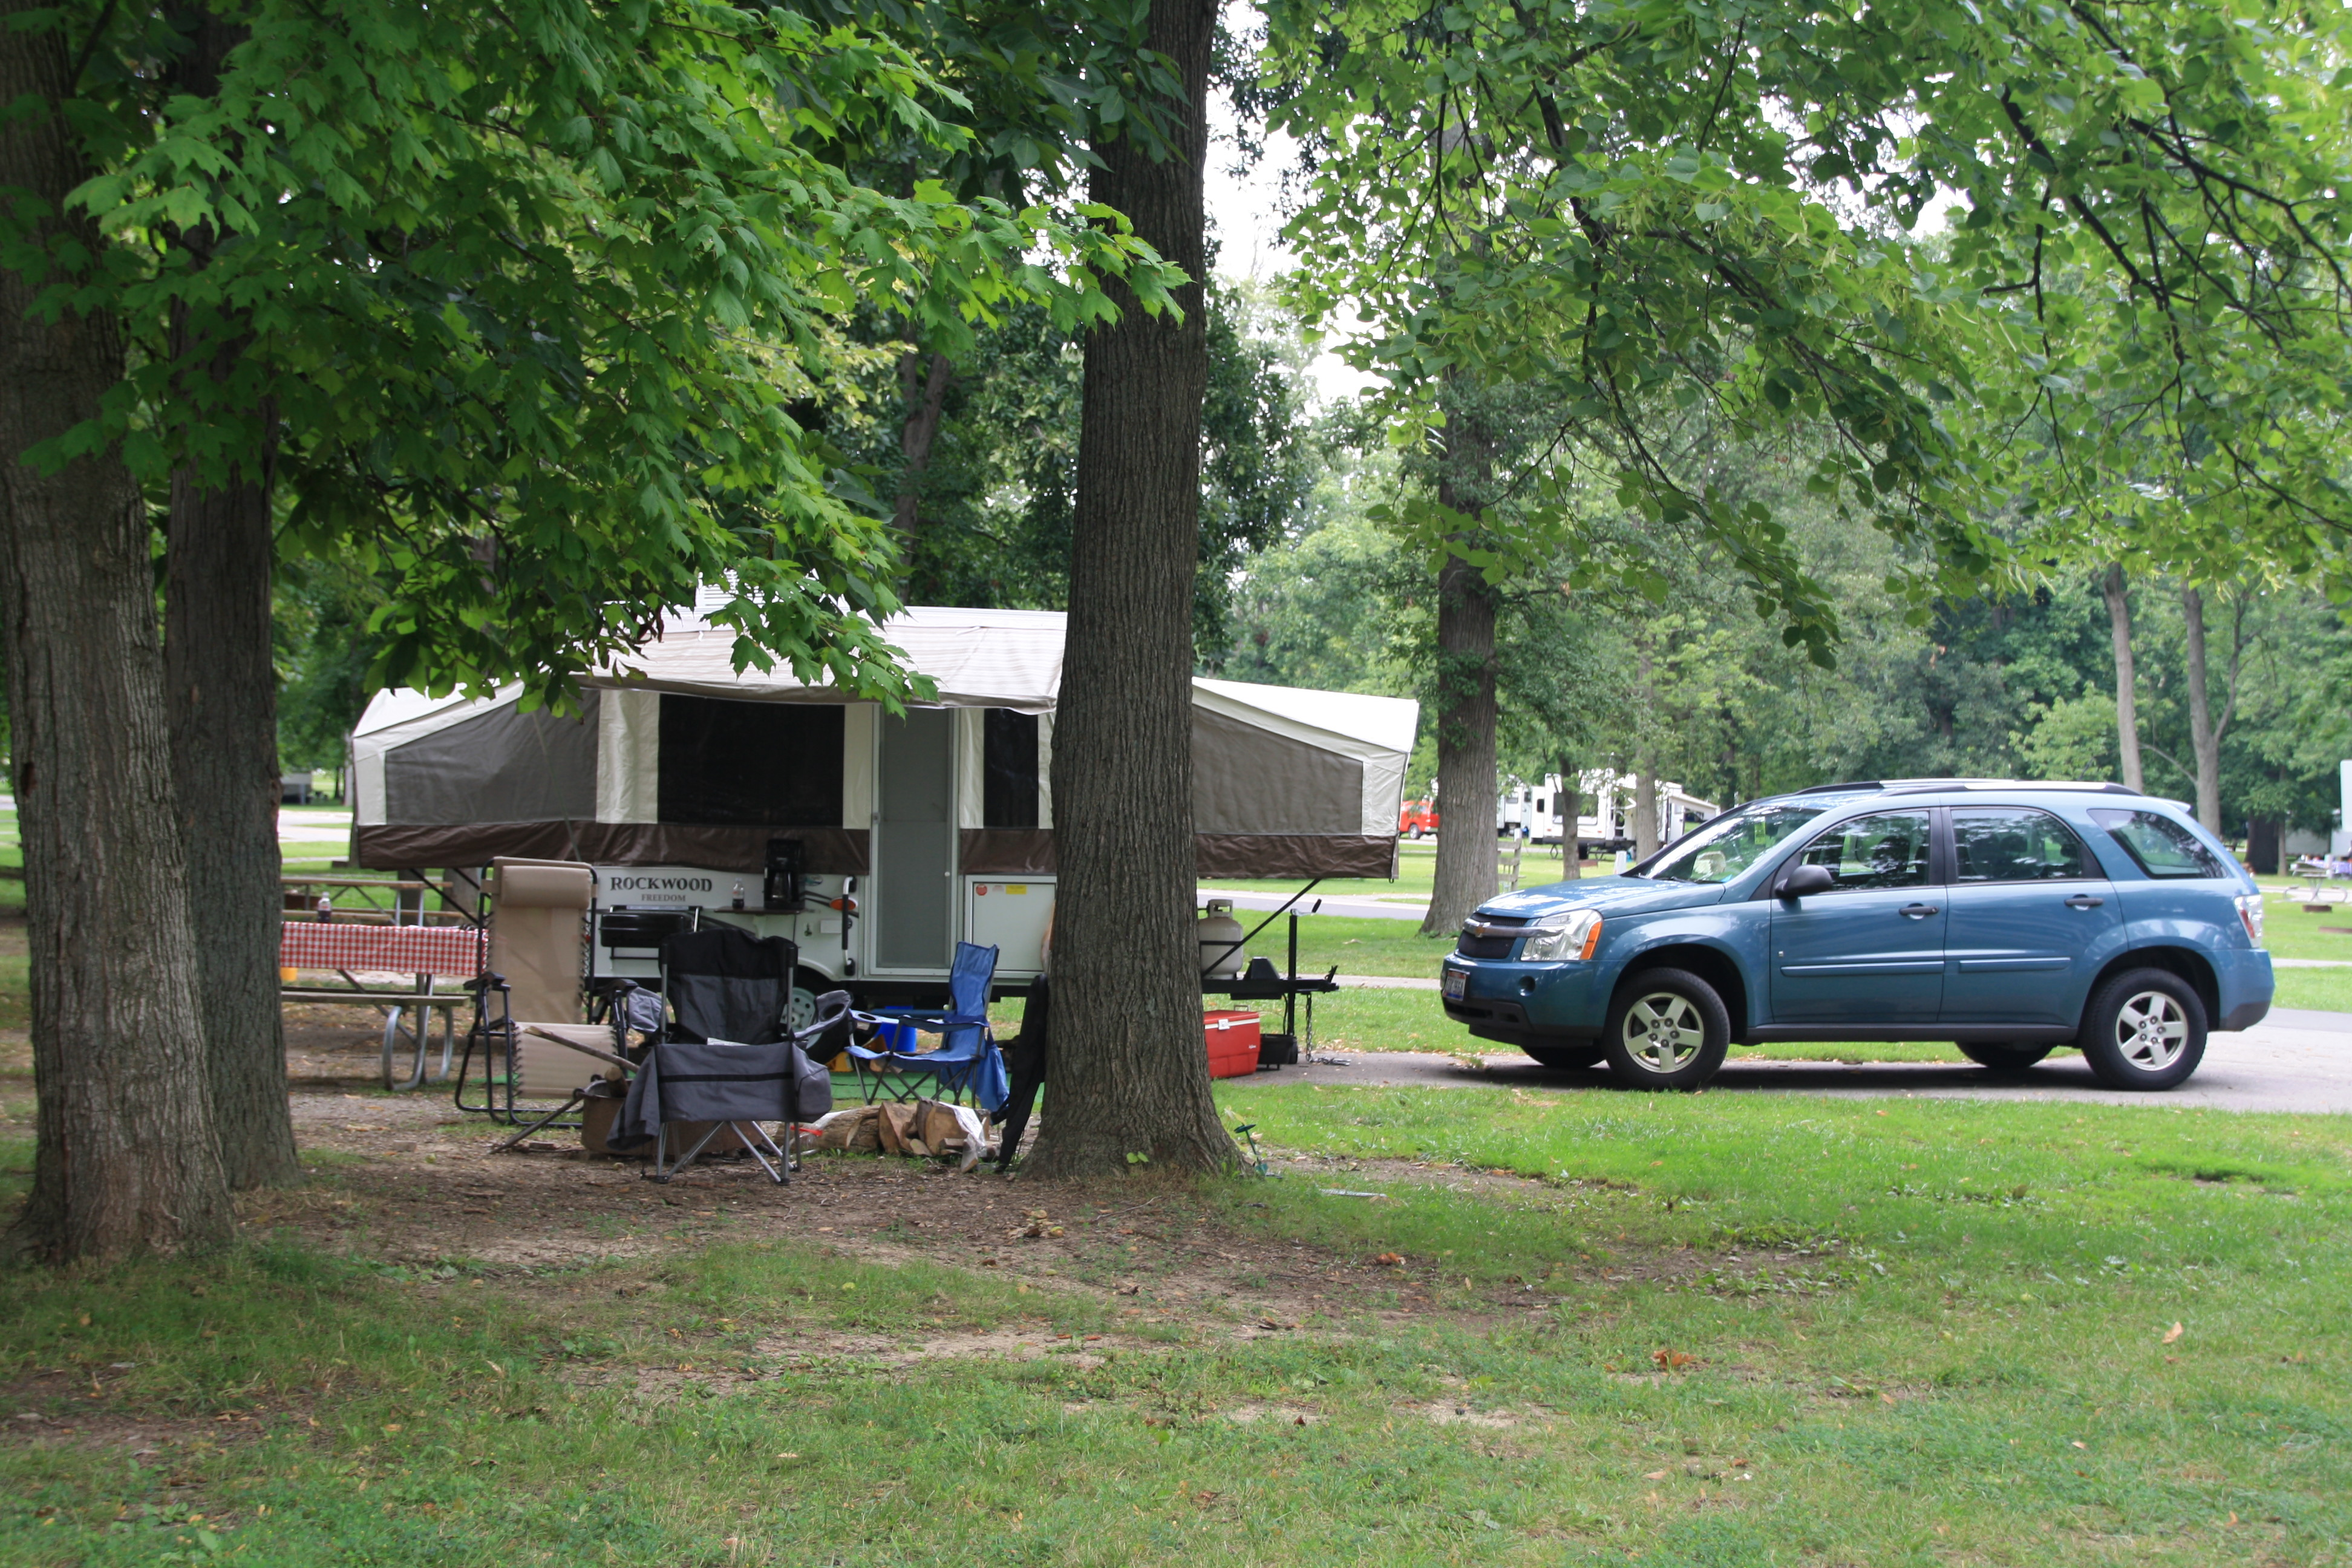 Indian lake state park lakeview oh crazy4camping for Marshalls cedar park